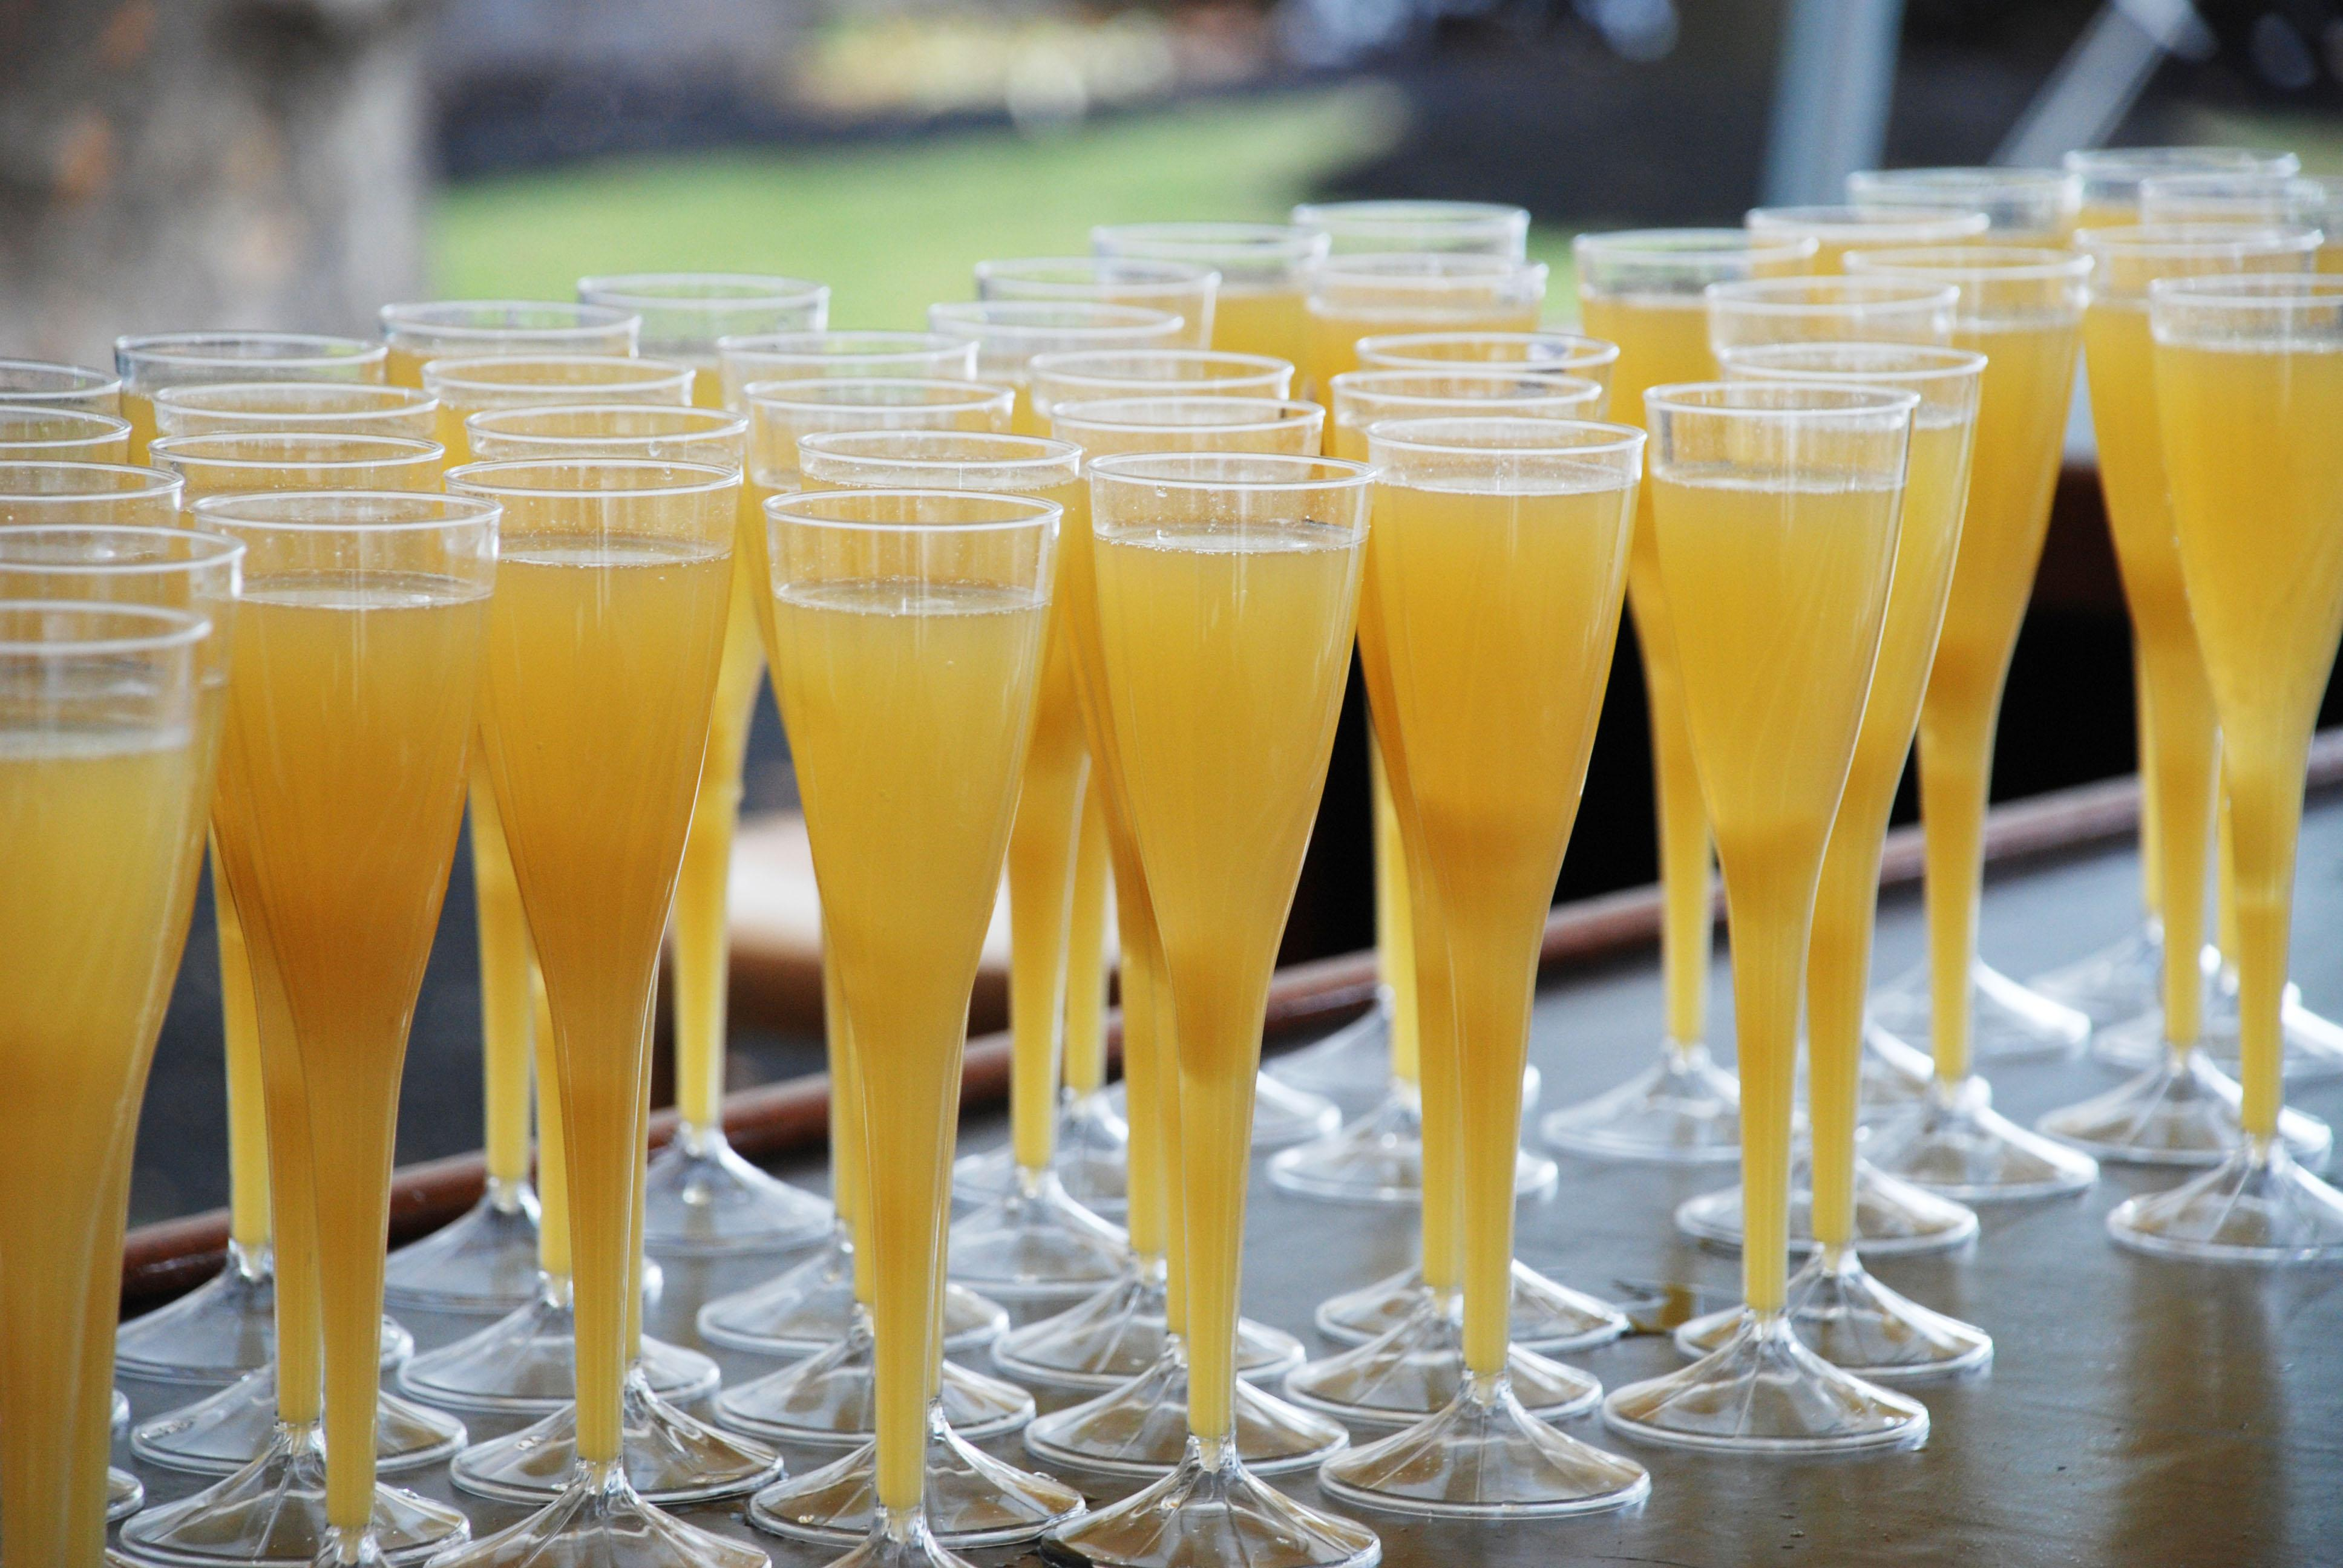 Grab a mimosa or five while listening to the Chicago Philharmonic Chamber Players Sunday morning. (Joe Shlabotnik / Flickr)